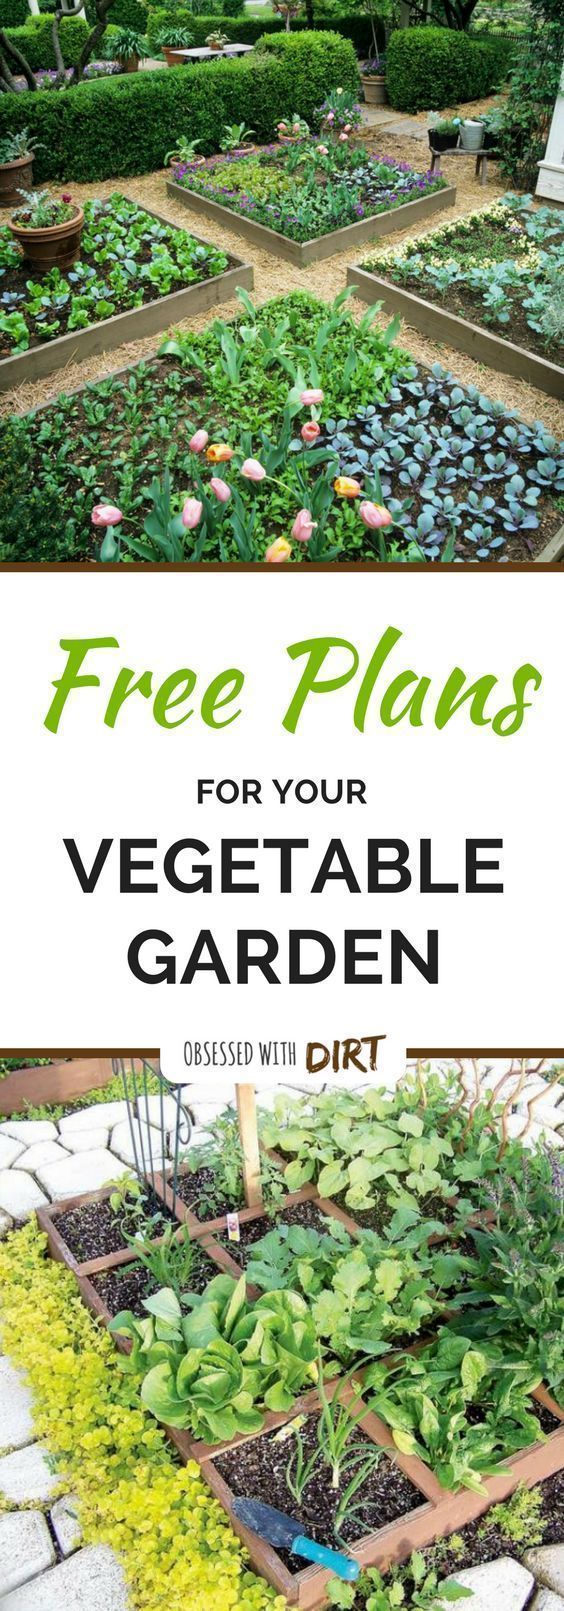 gardening design. Four super easy vegetable garden layouts  There s one for every size with very clear 3449 best Gardening Design images on Pinterest Dream